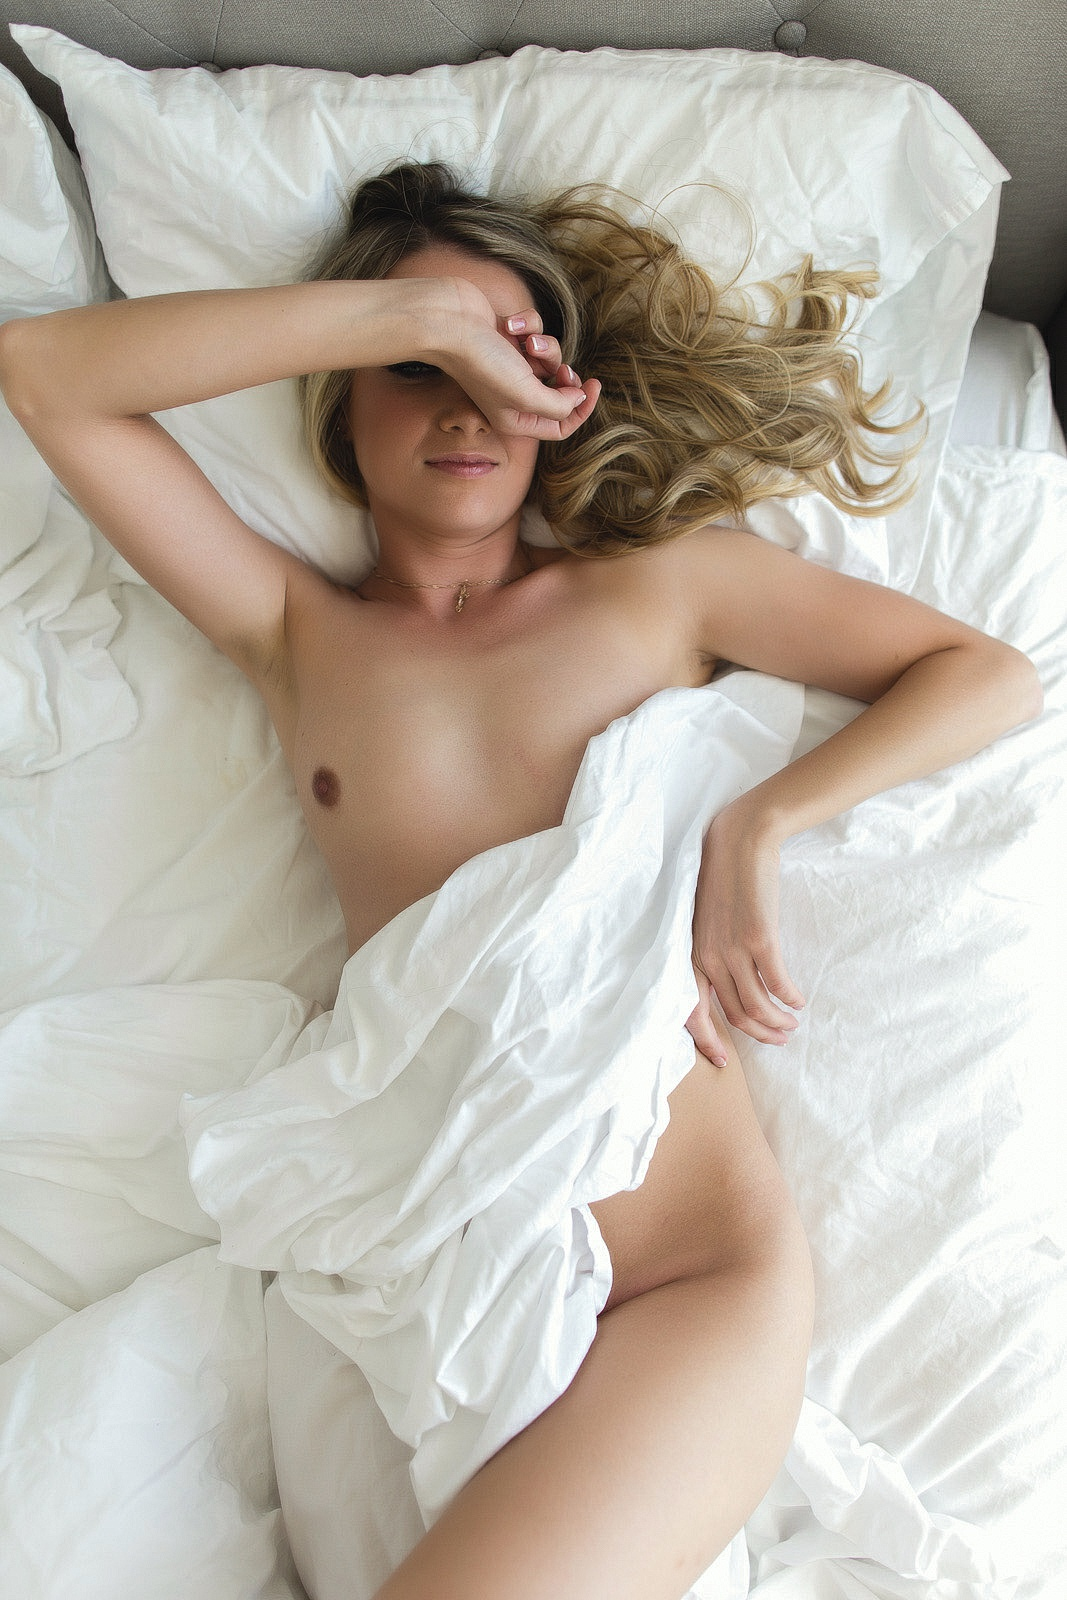 Image URL: http://wlp.whiteliesphotography.com/wlp/wp-content/uploads/2016/11/toronto-boudoir-by-white-lies-photography-6600.jpg  Click to view this fusker